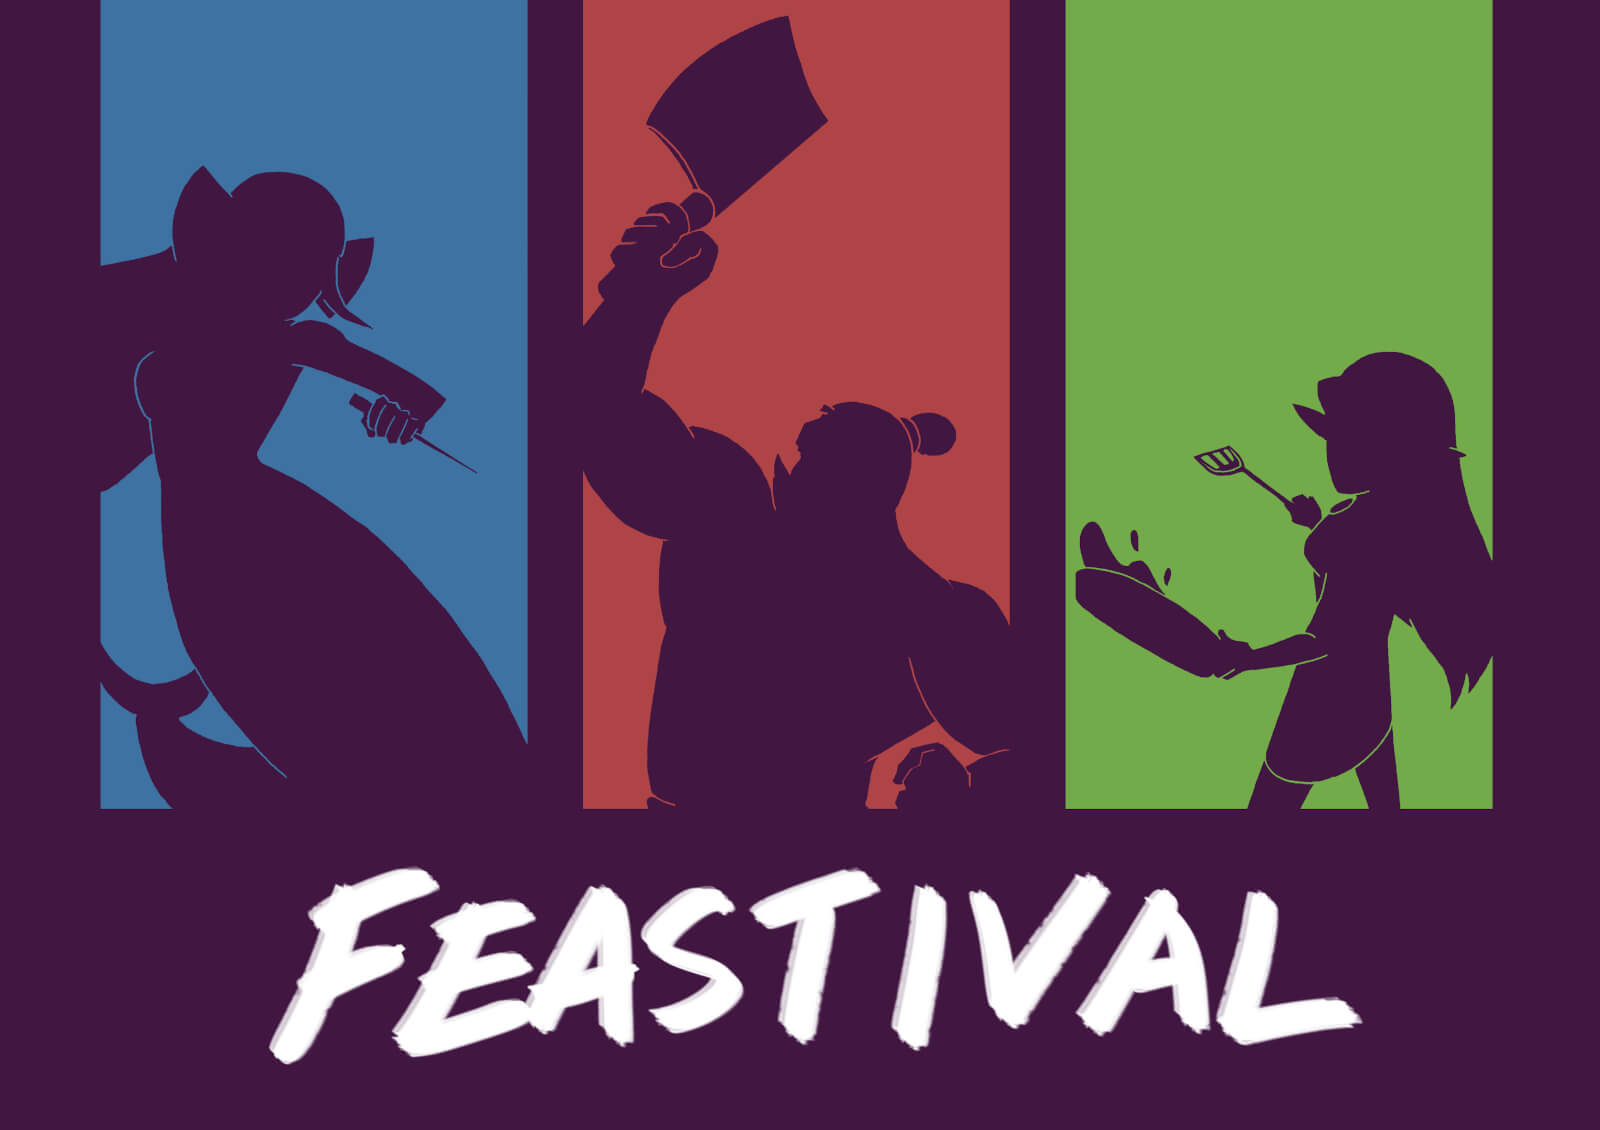 Feastival title with silhouette of an elf, orc, and mermaid